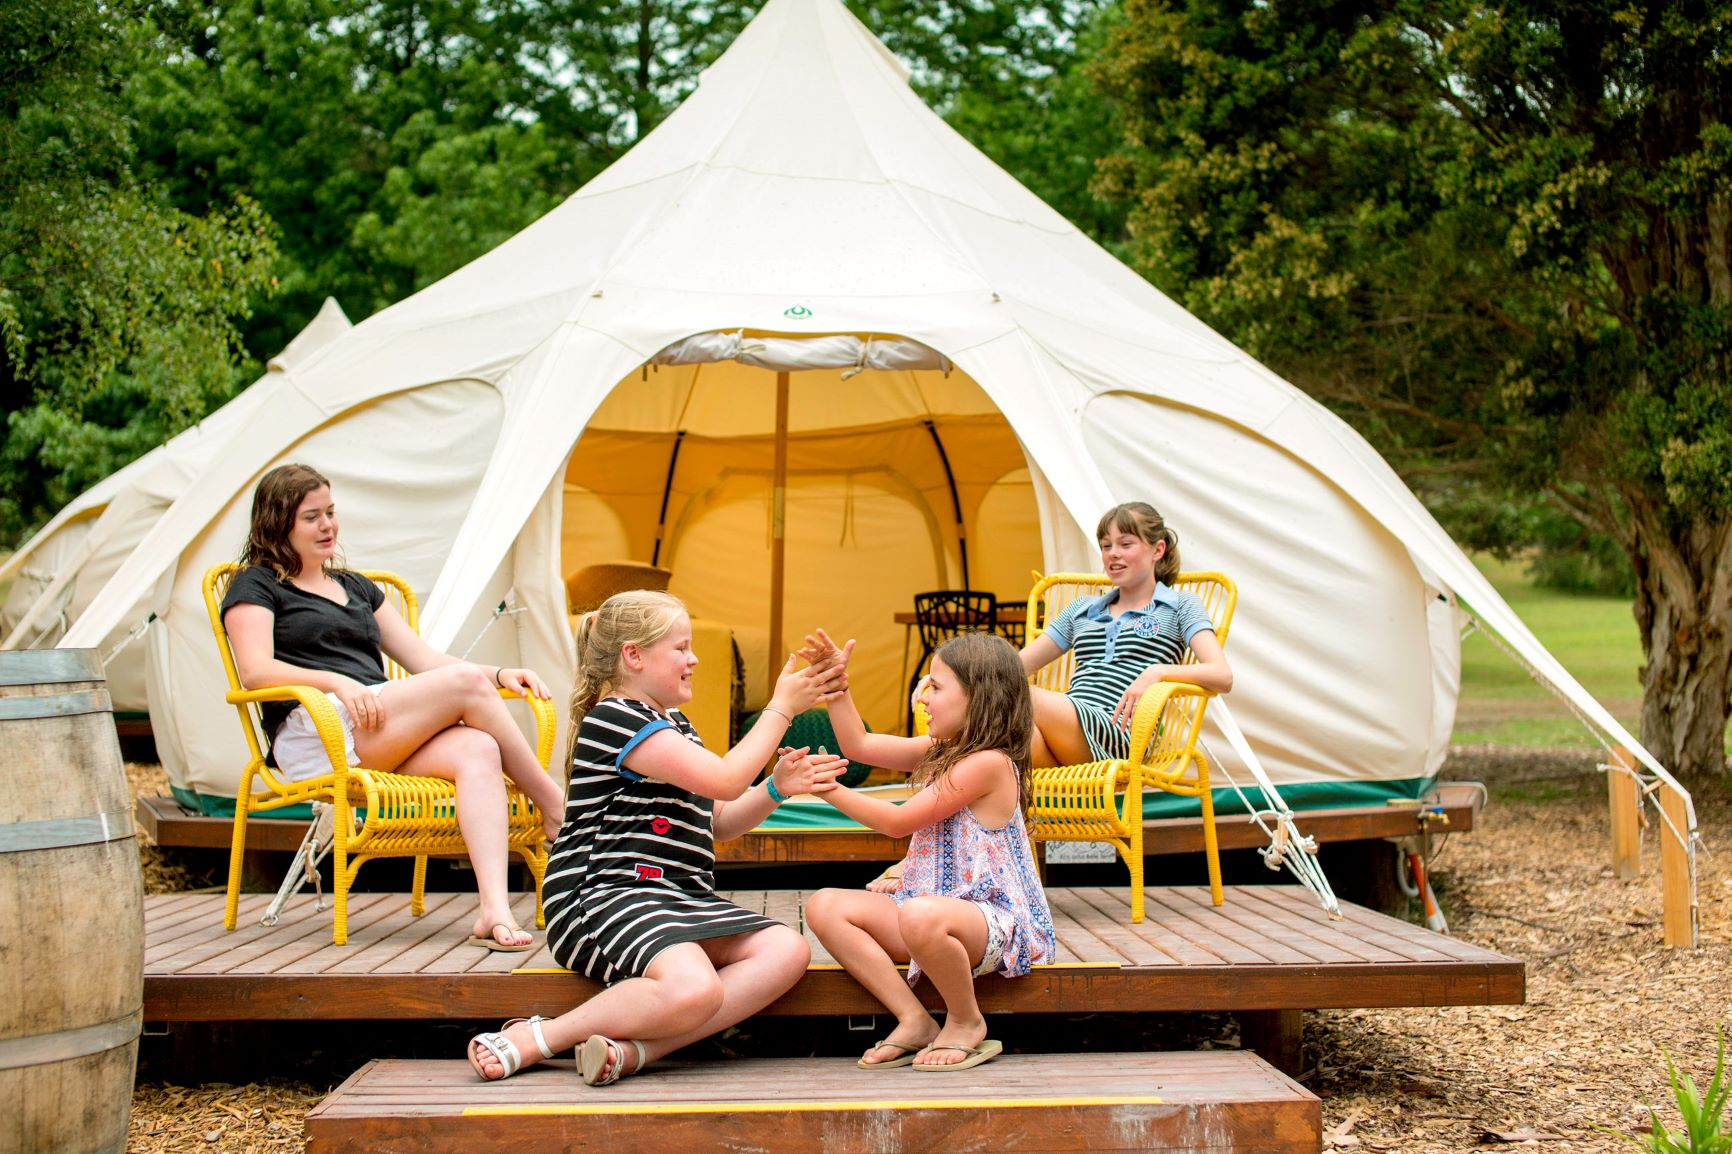 Reasons Why Glamping is Better than Camping in Every Way